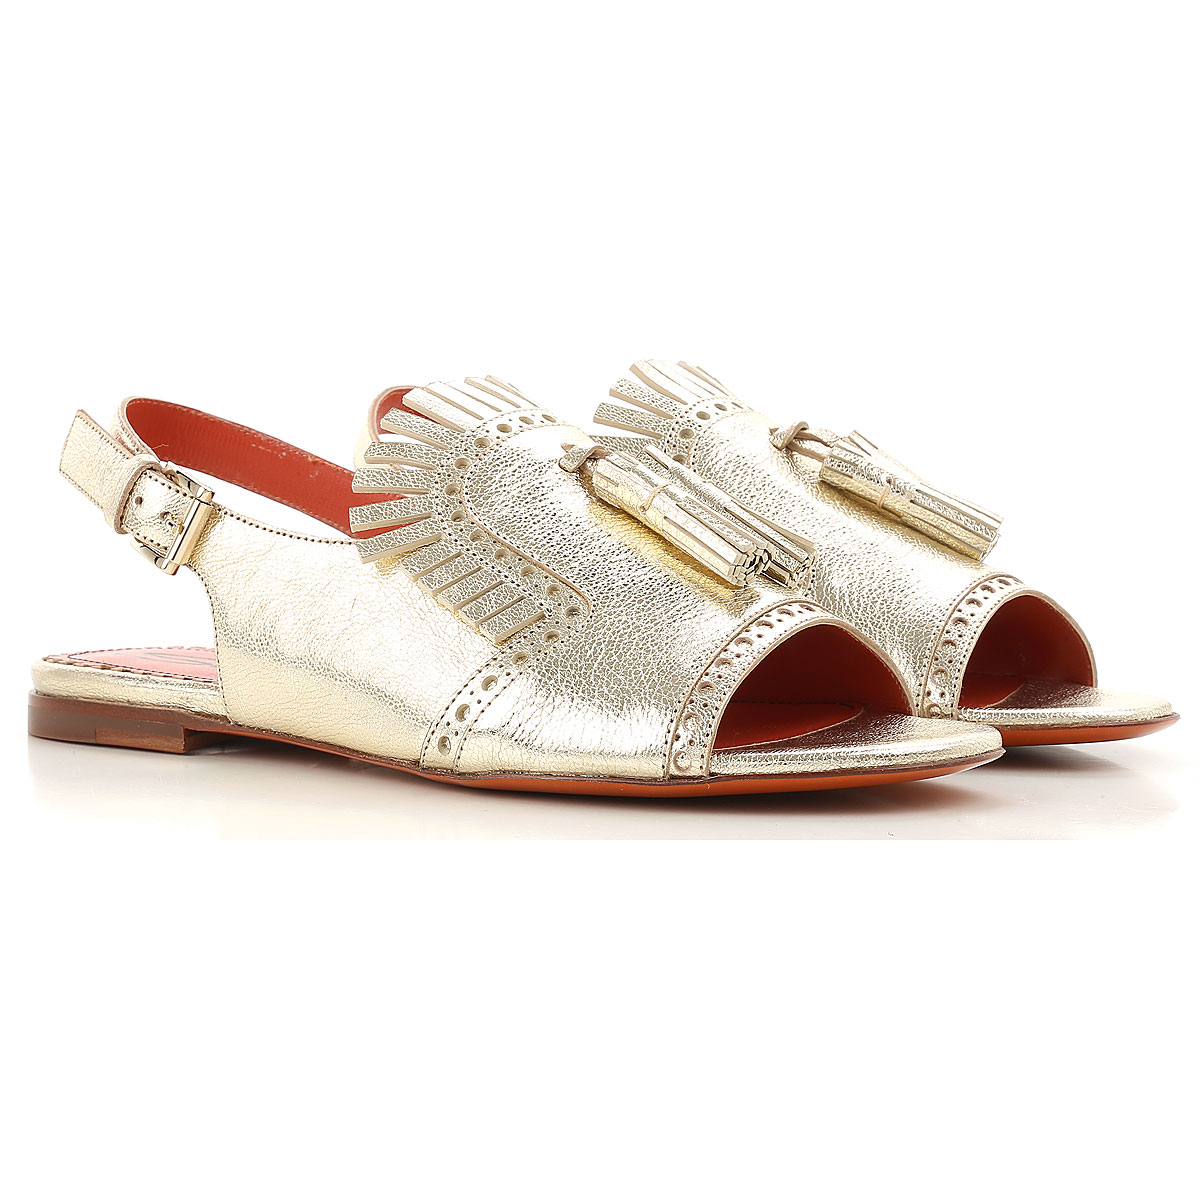 Santoni Sandals for Women On Sale in Outlet, Gold, Leather, 2019, 6